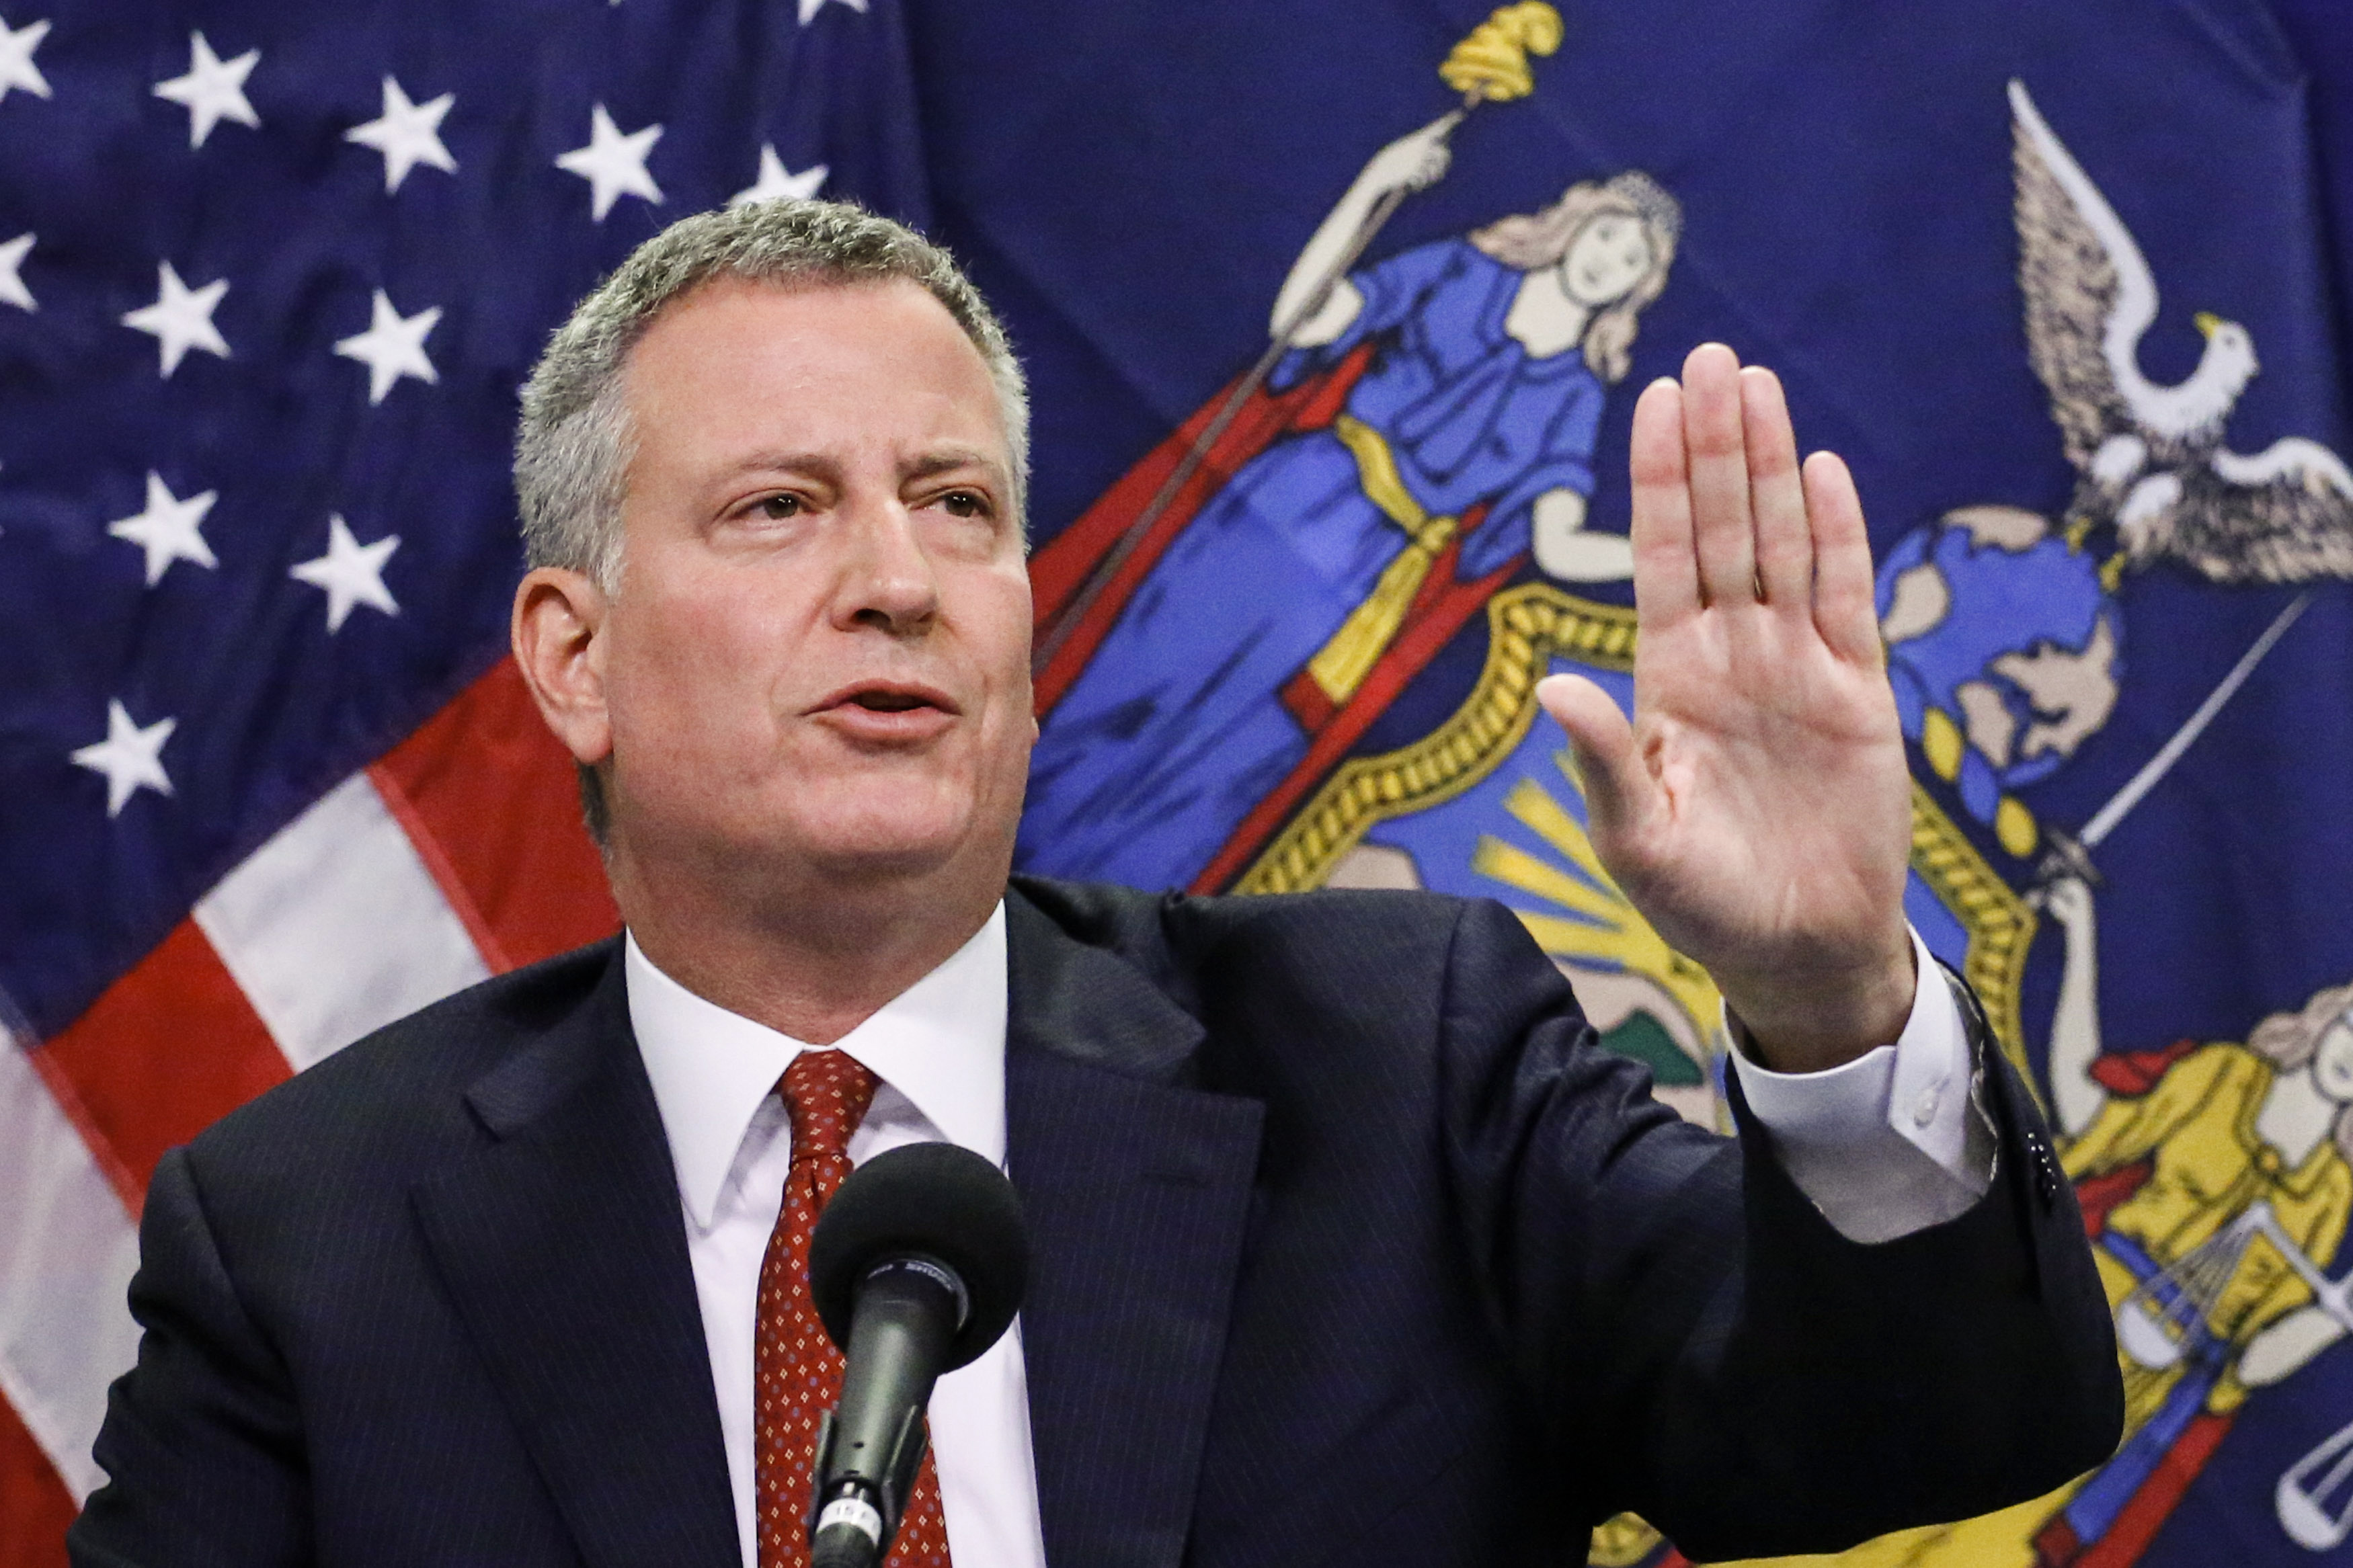 Mayor Bill de Blasio of New York City speaks at a press conference October 24, 2014 in New York City. In New York City.